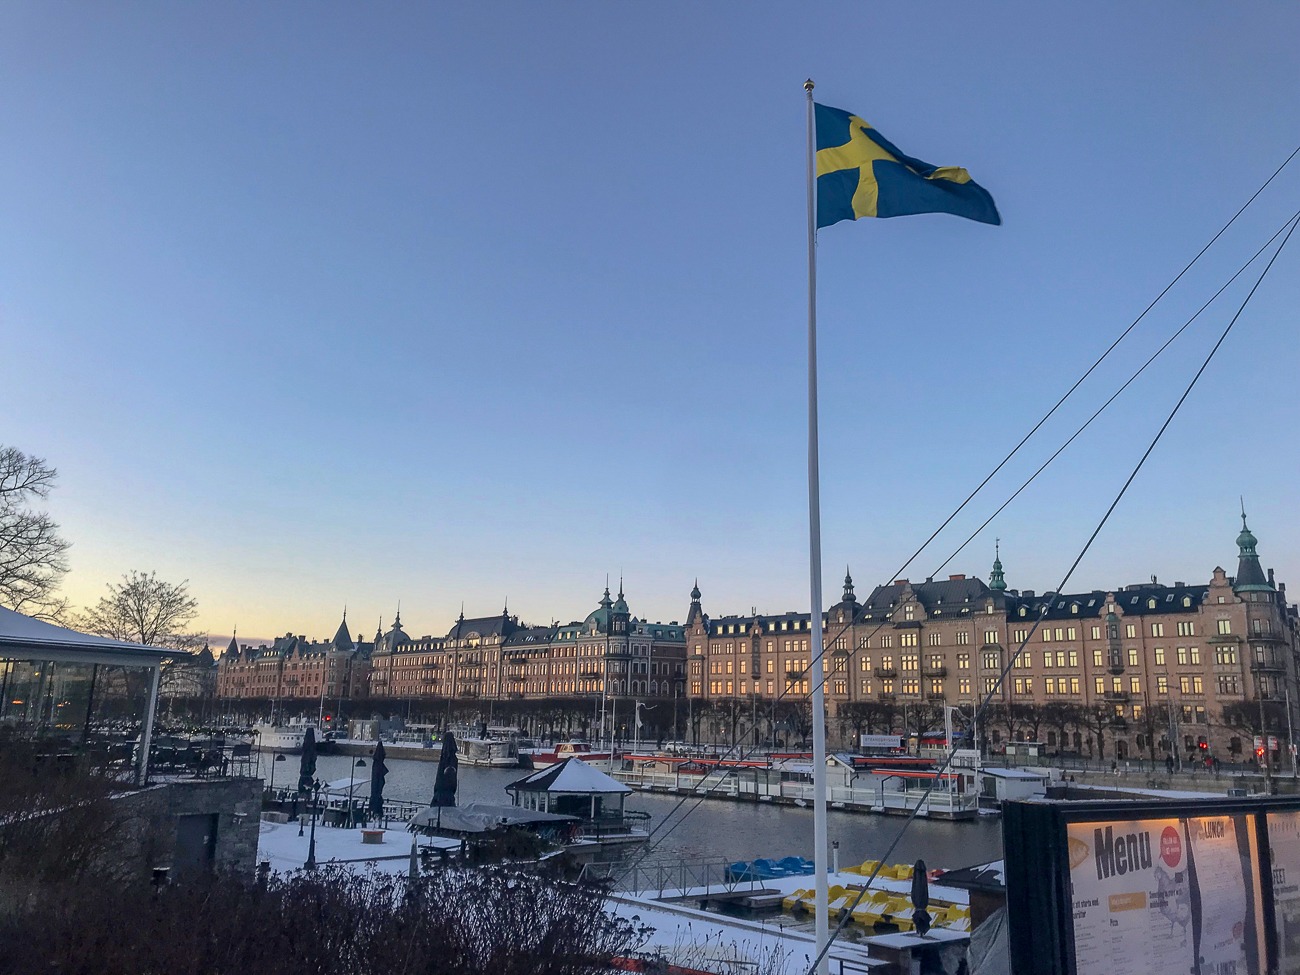 A photo of Stockholm on the river.